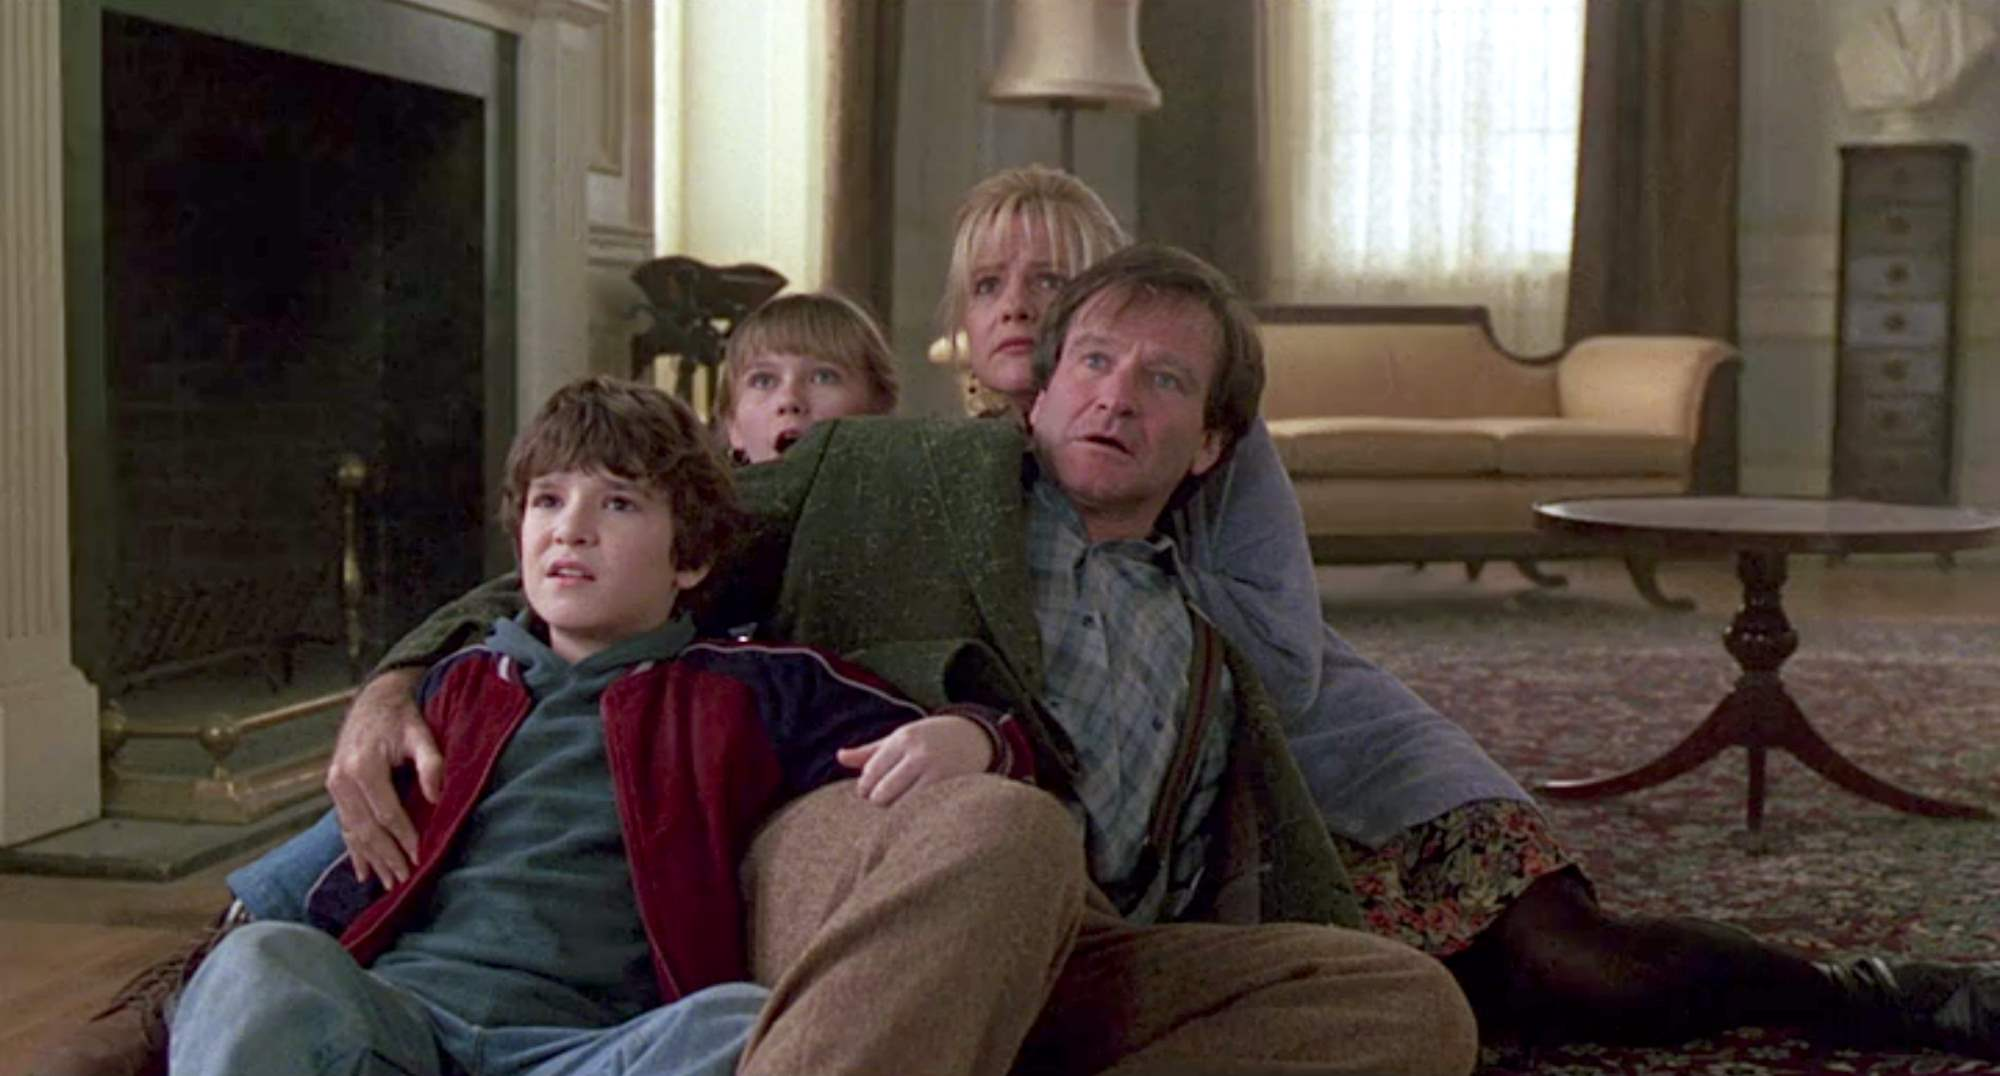 Scared family in Jumanji